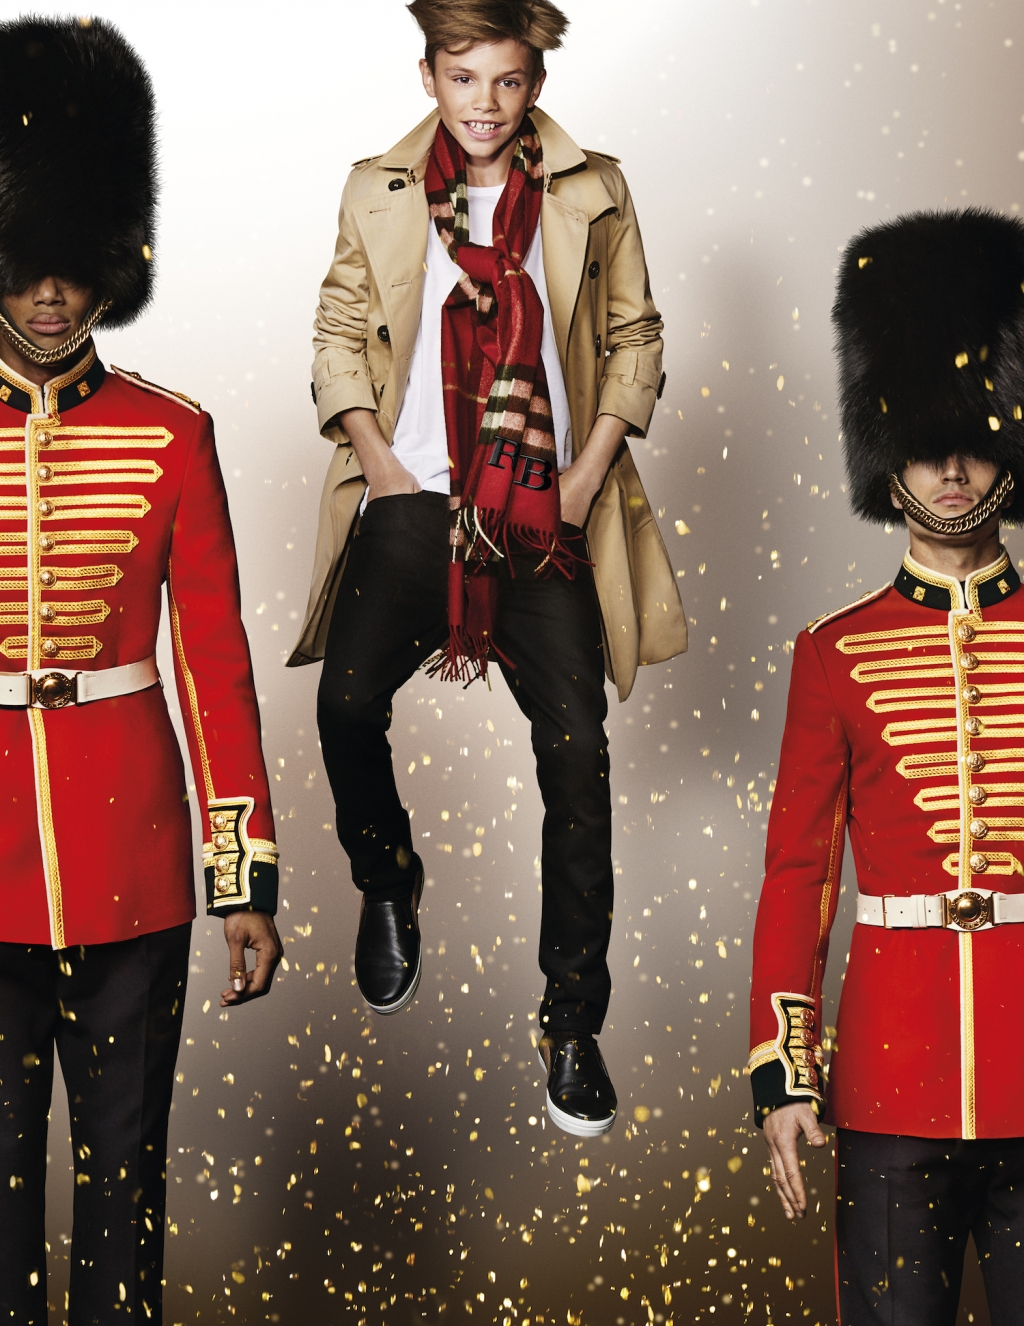 ROMEO_BECKHAM_IN_THE_BURBERRY_FESTIVE_CAMPAIGN___SHOT_BY_MARIO_TESTINO